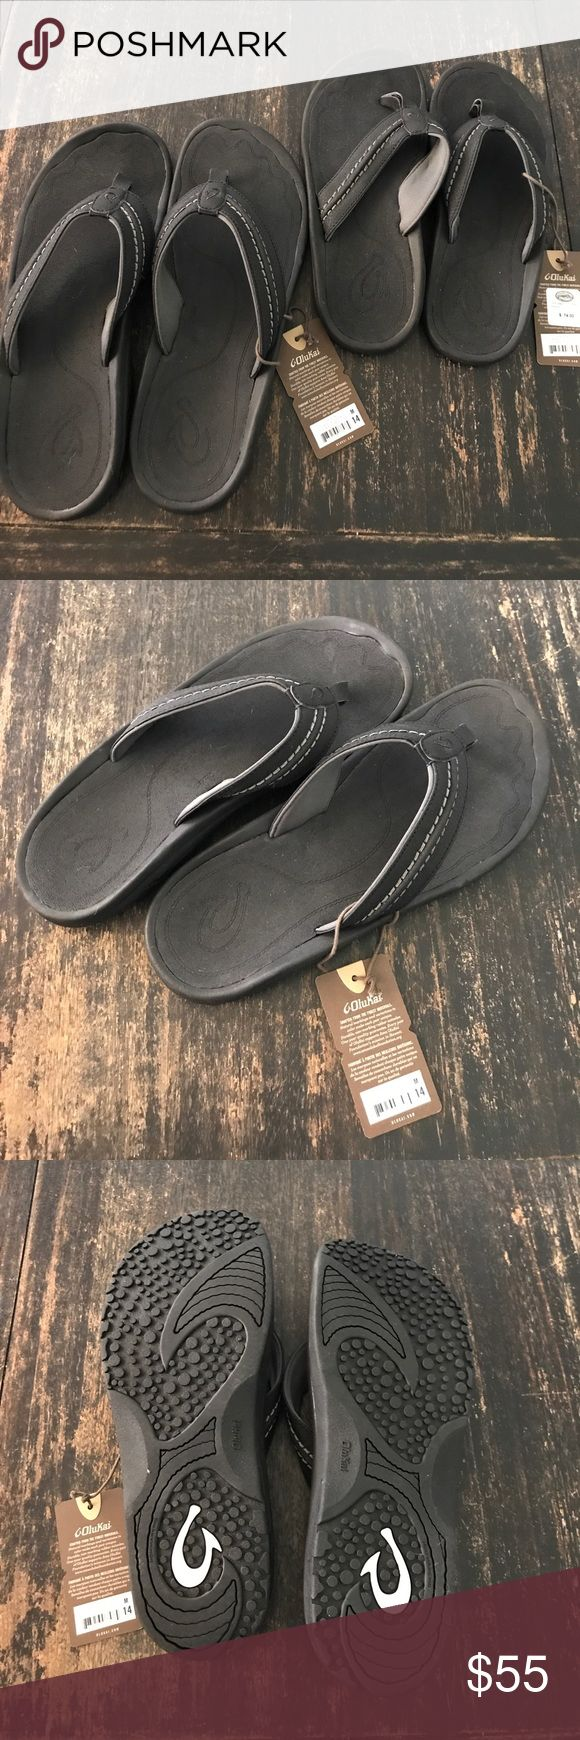 Men's OluKai Sandals Men's black Hokua sandals. New, never worn. OluKai Shoes Sandals & Flip-Flops